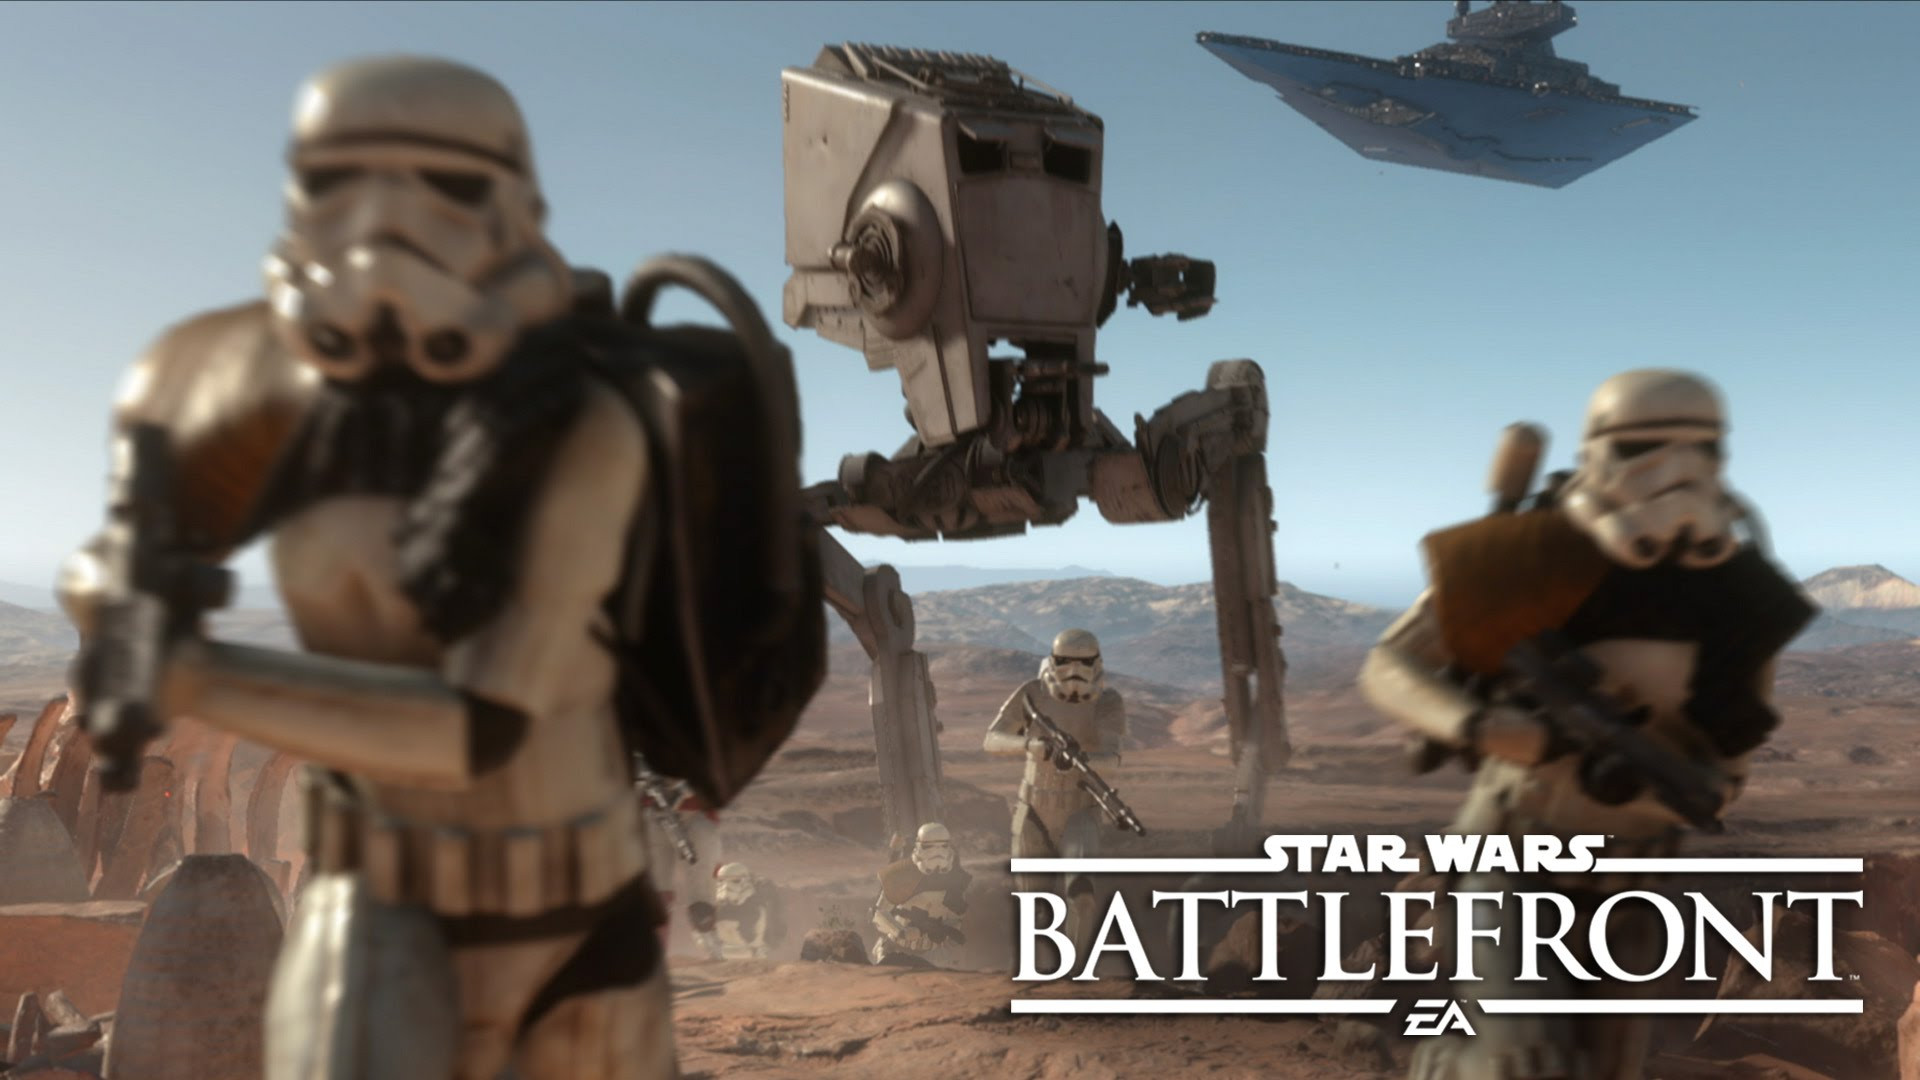 Star Wars Battlefront PS4 vs Xbox One, Hangisinde Daha İyi?